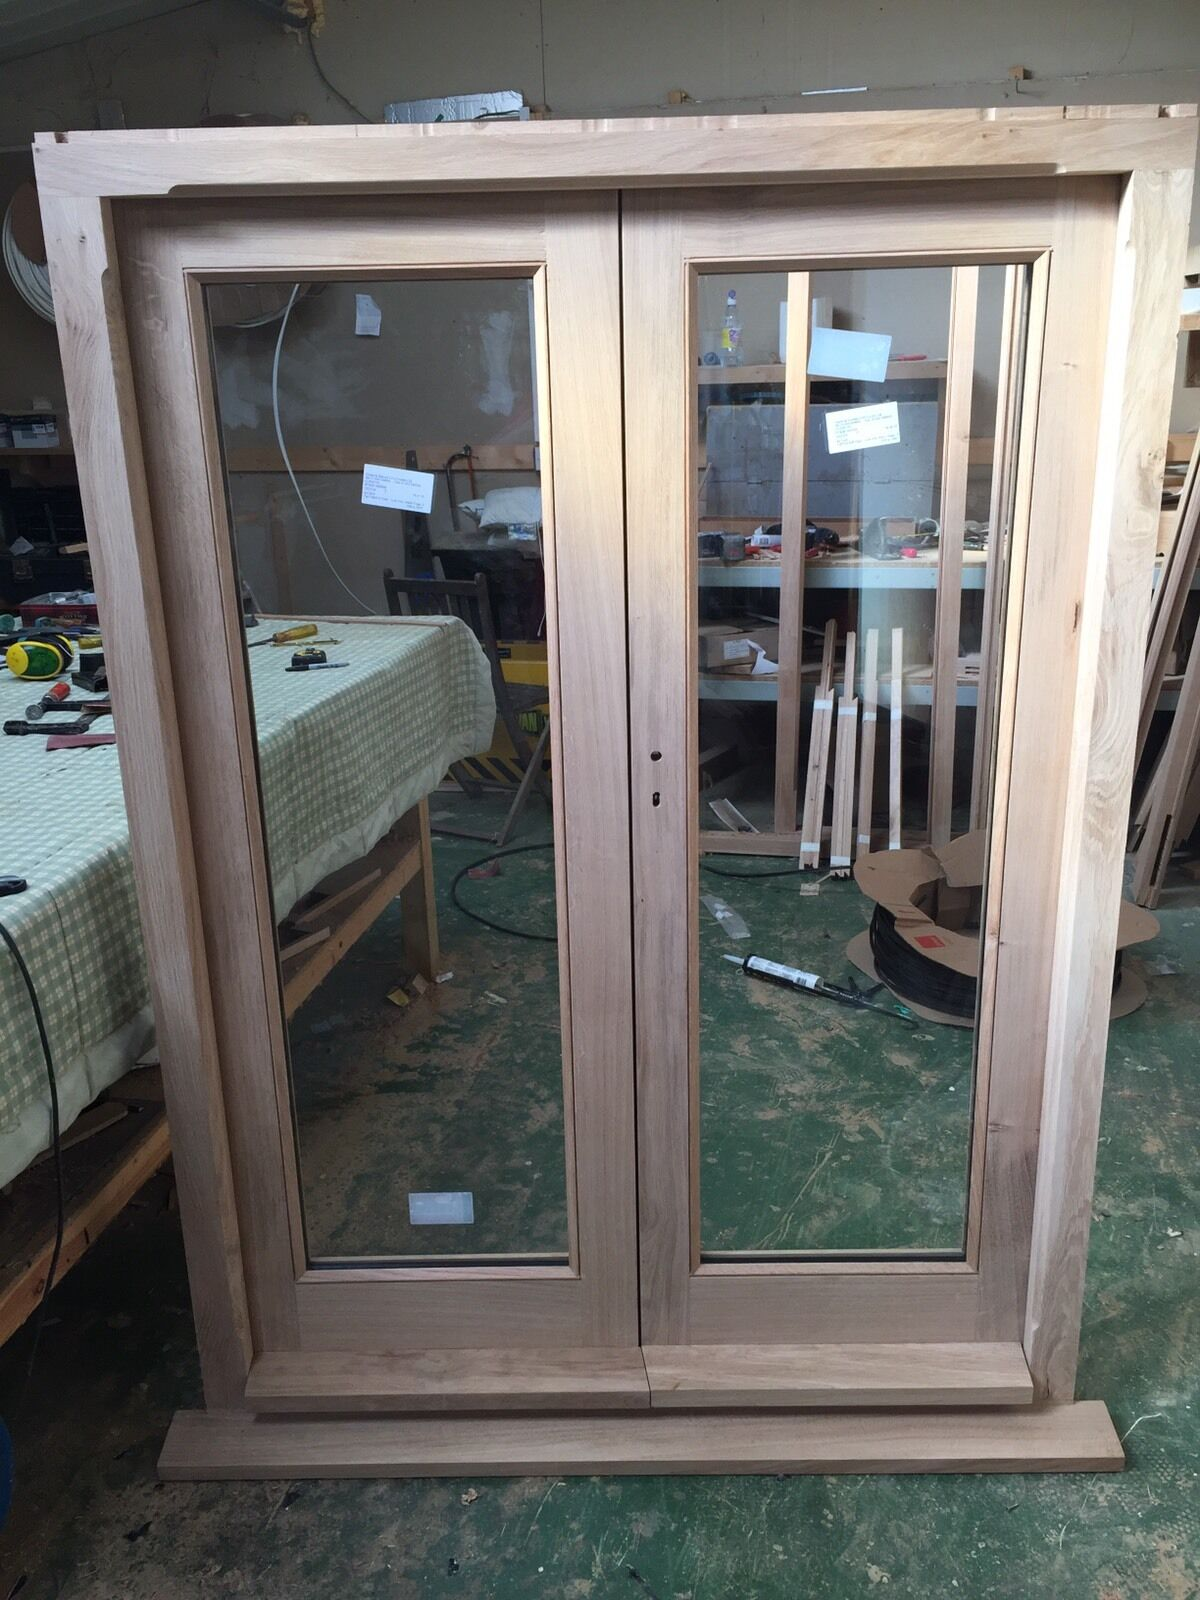 Solid Oak Hardwood French Doors And Frame  £1,70000. Cheap Garage. Two Car Metal Garage. Garage Door Keychain Remote. Custom Metal Doors. Garage Doors Hinged. Antique Cabinet Door Pulls. Pet Storm Door. Black Garage Doors